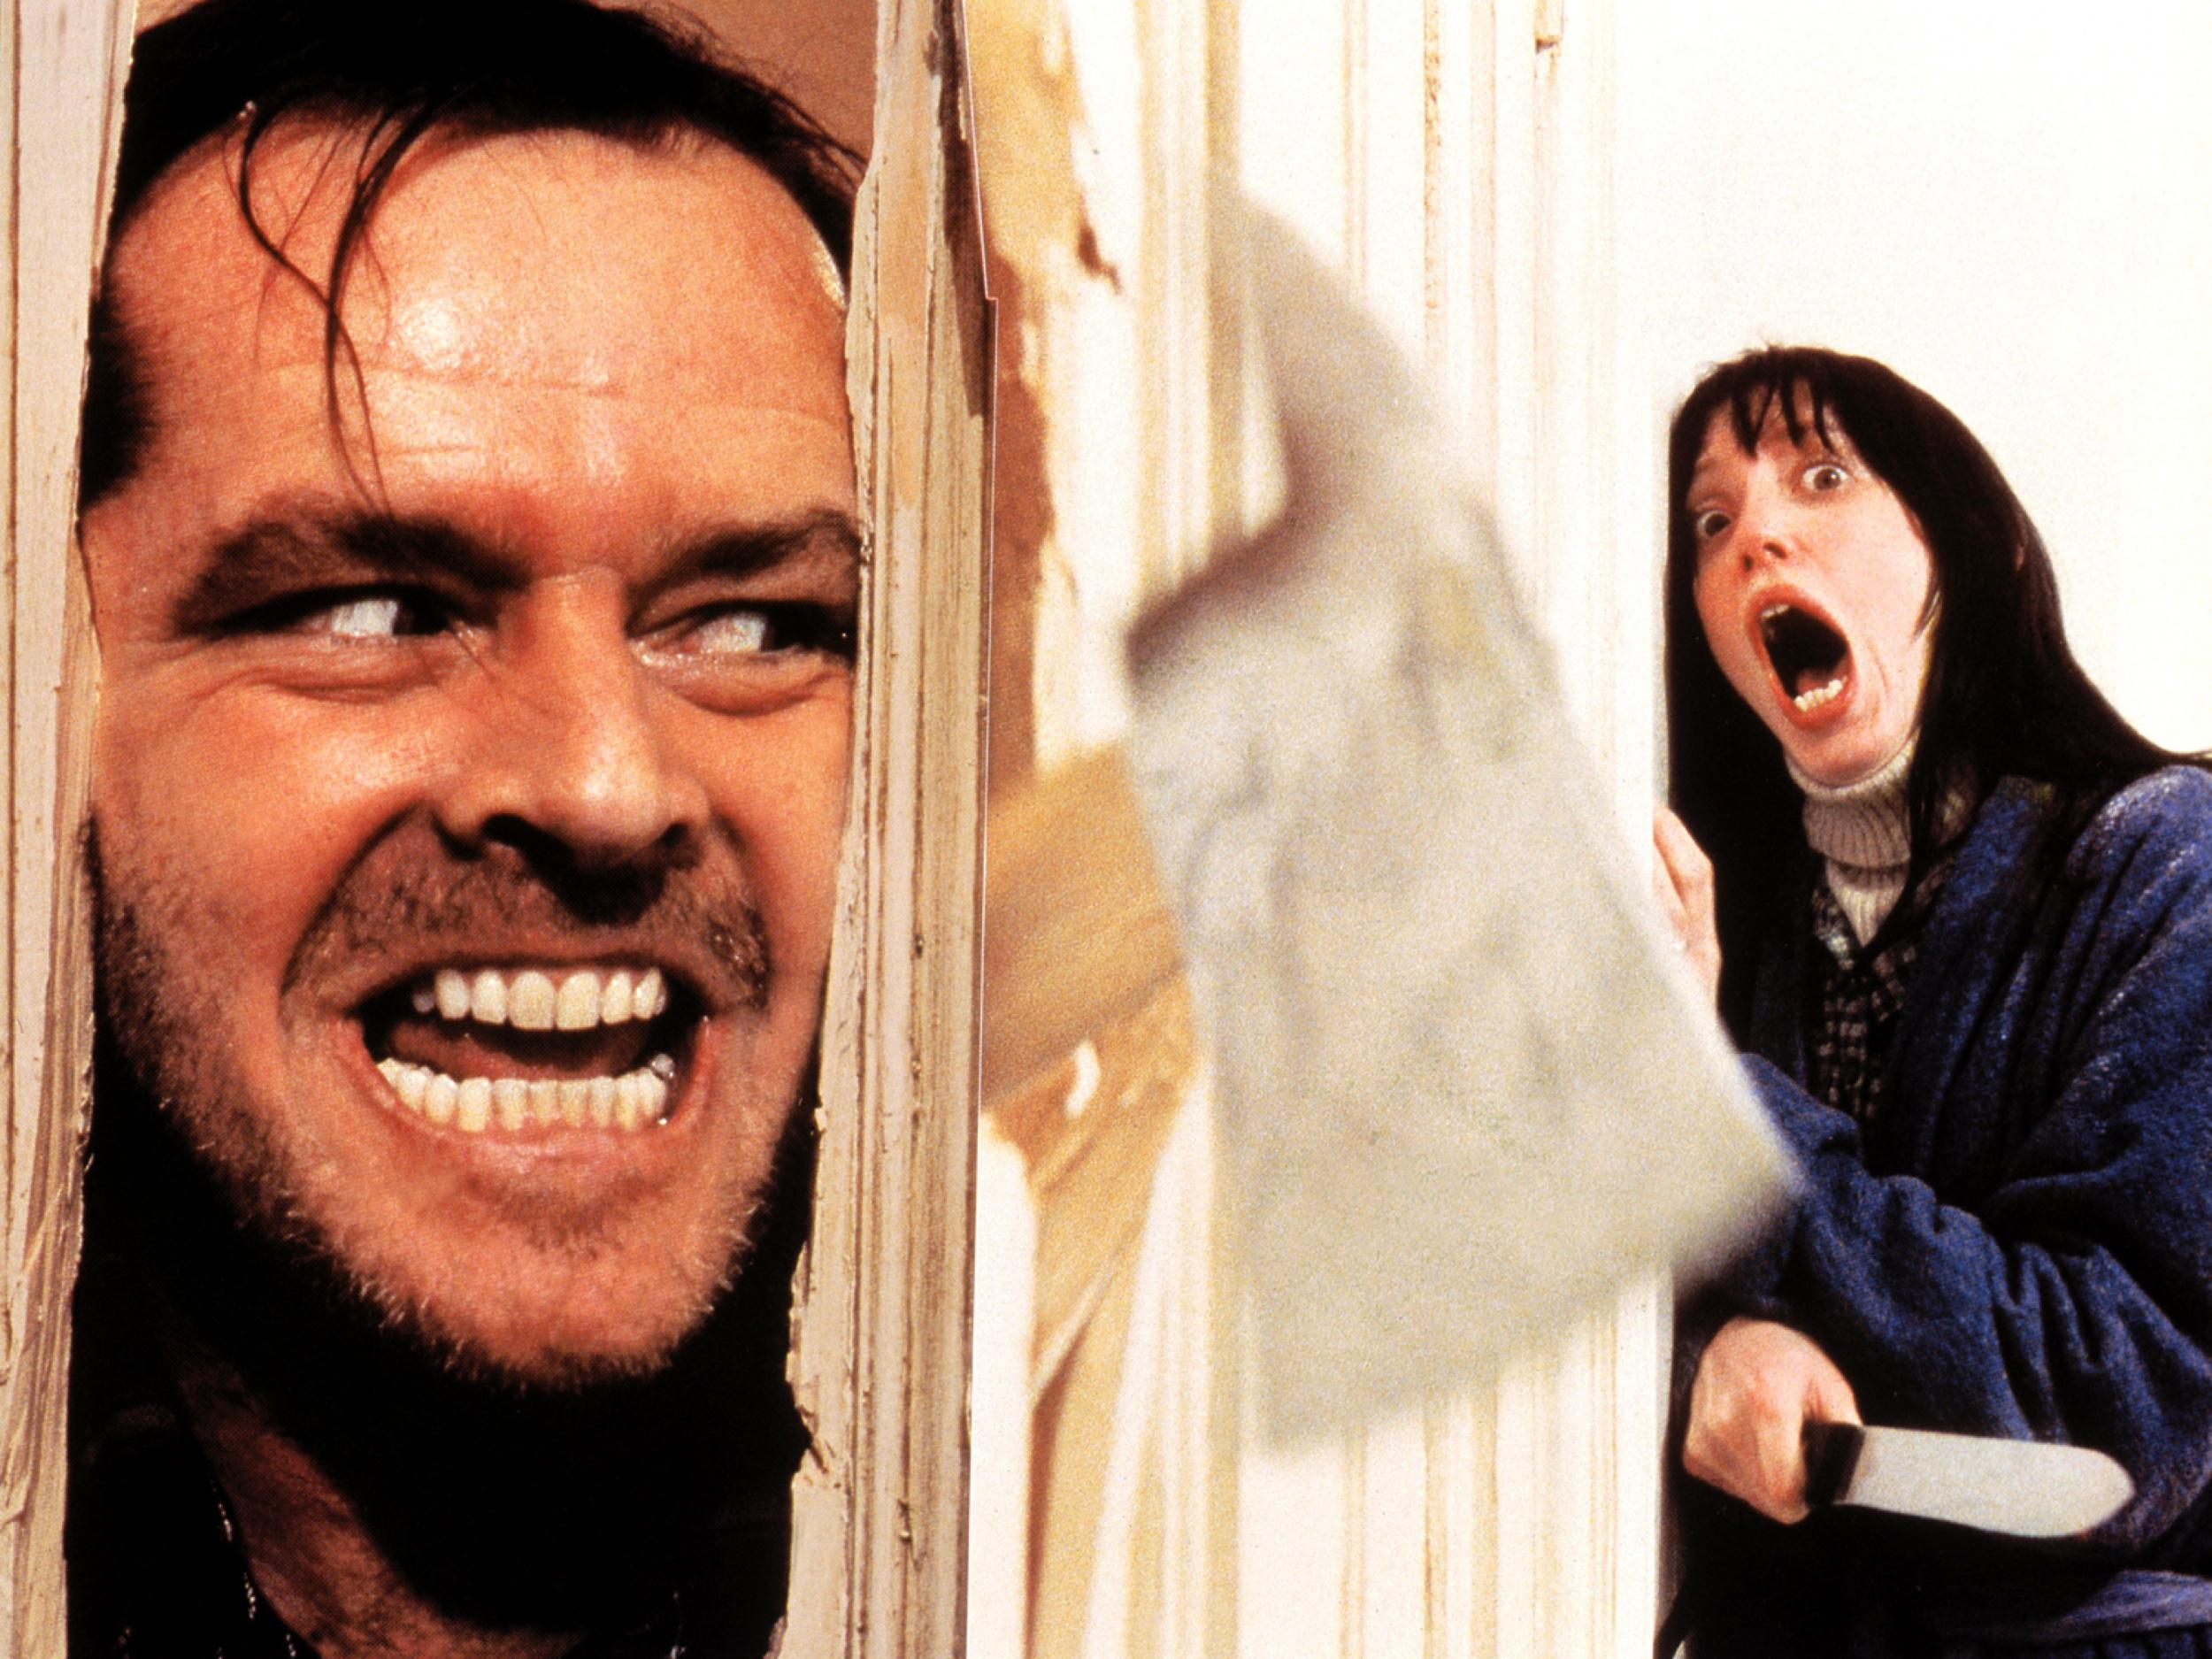 'Making The Shining was hell': How tormented stars, Kubrick's temper and box-office disaster led to an immortal horror